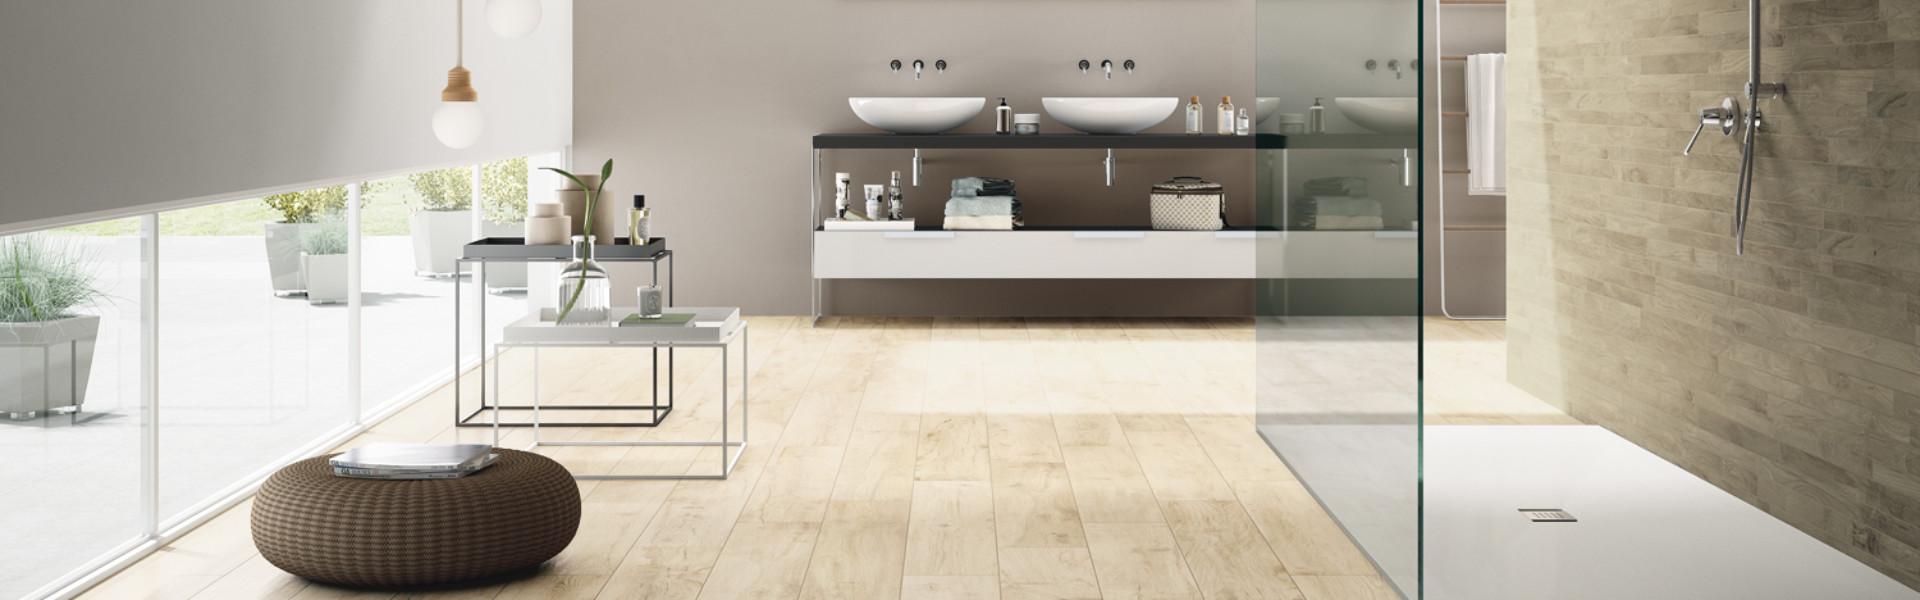 Castelvetro_2014_Woodland 20x120 Almond+Multistick Maple_01_Bagno_Definitivo NEW.tif